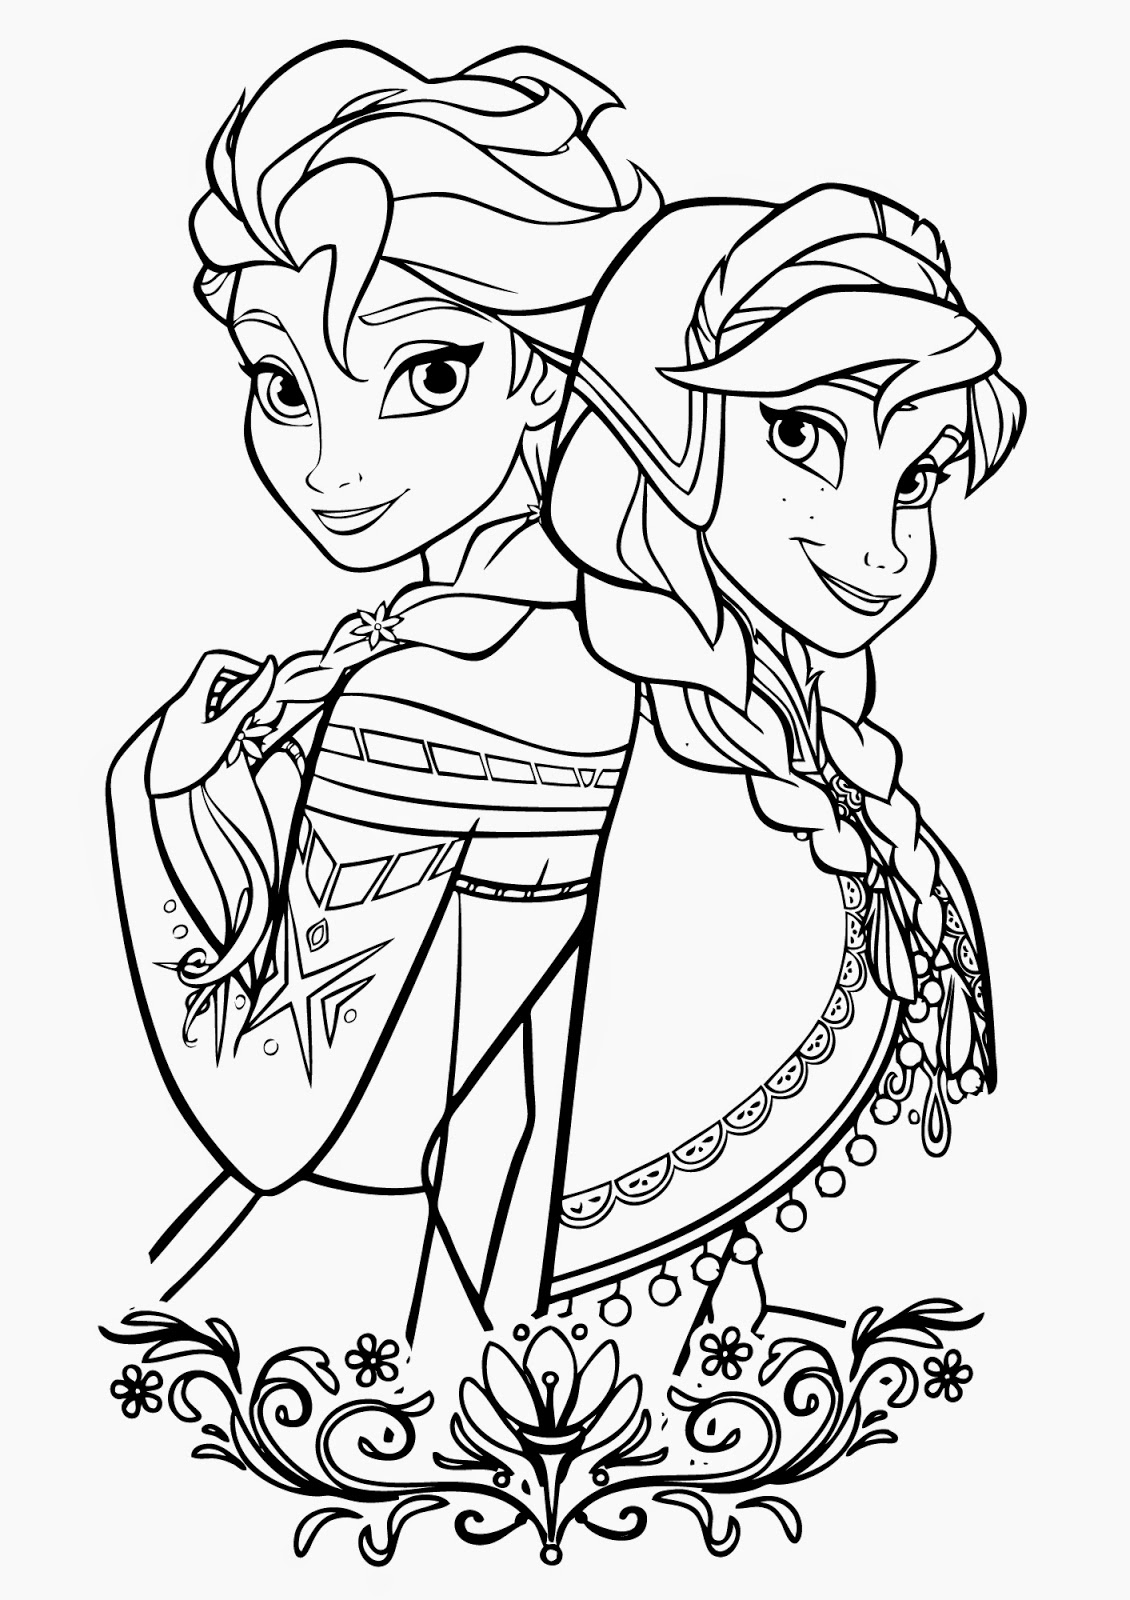 frozen colouring pages 15 beautiful disney frozen coloring pages free instant pages frozen colouring